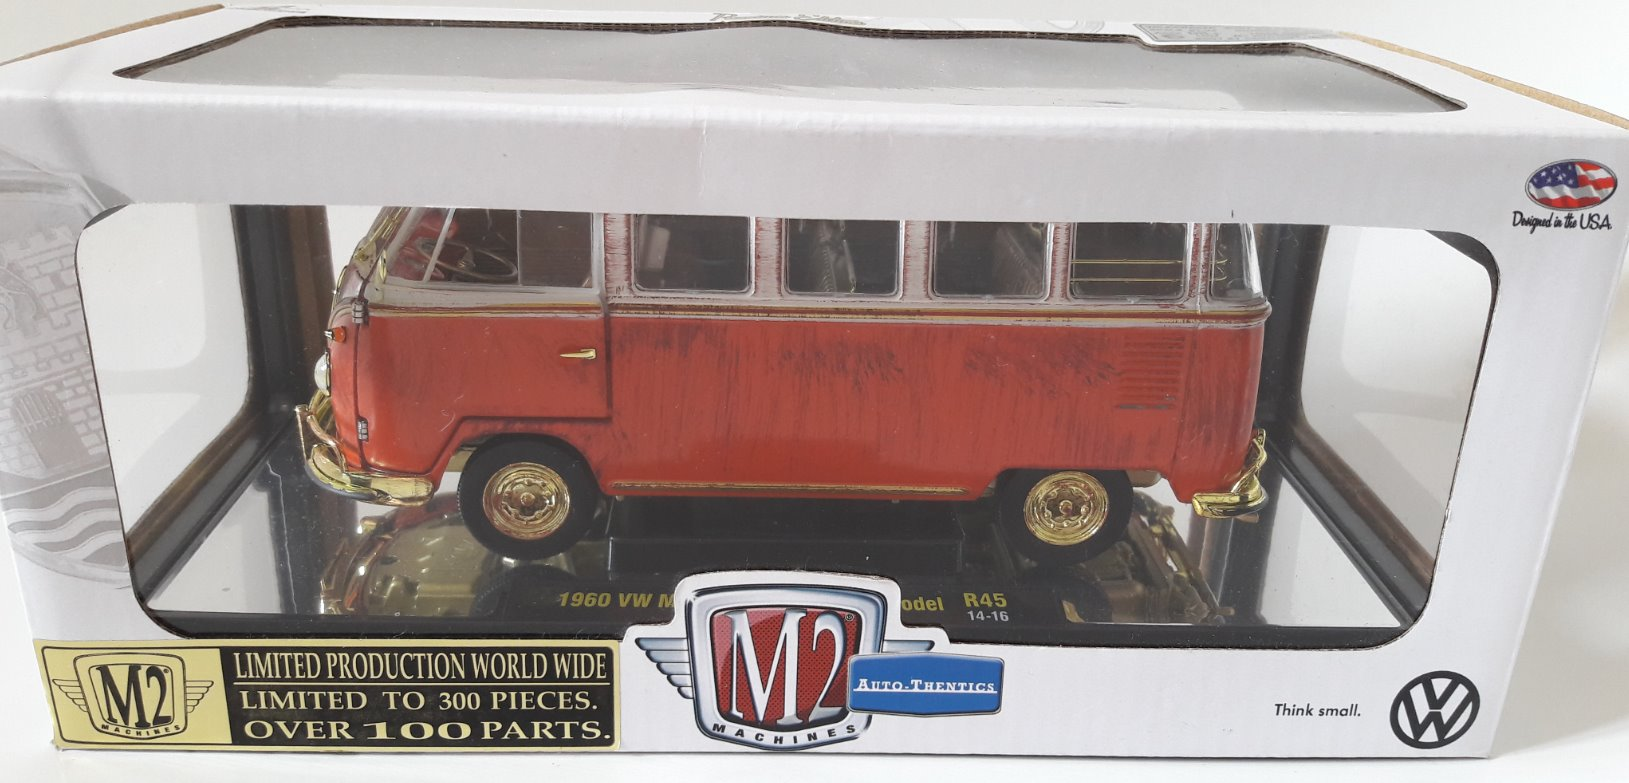 VW Microbus Deluxe USA Model Toy Car, Die Cast, And Hot Wheels - Rottame (1960) back image (back cover, second image)